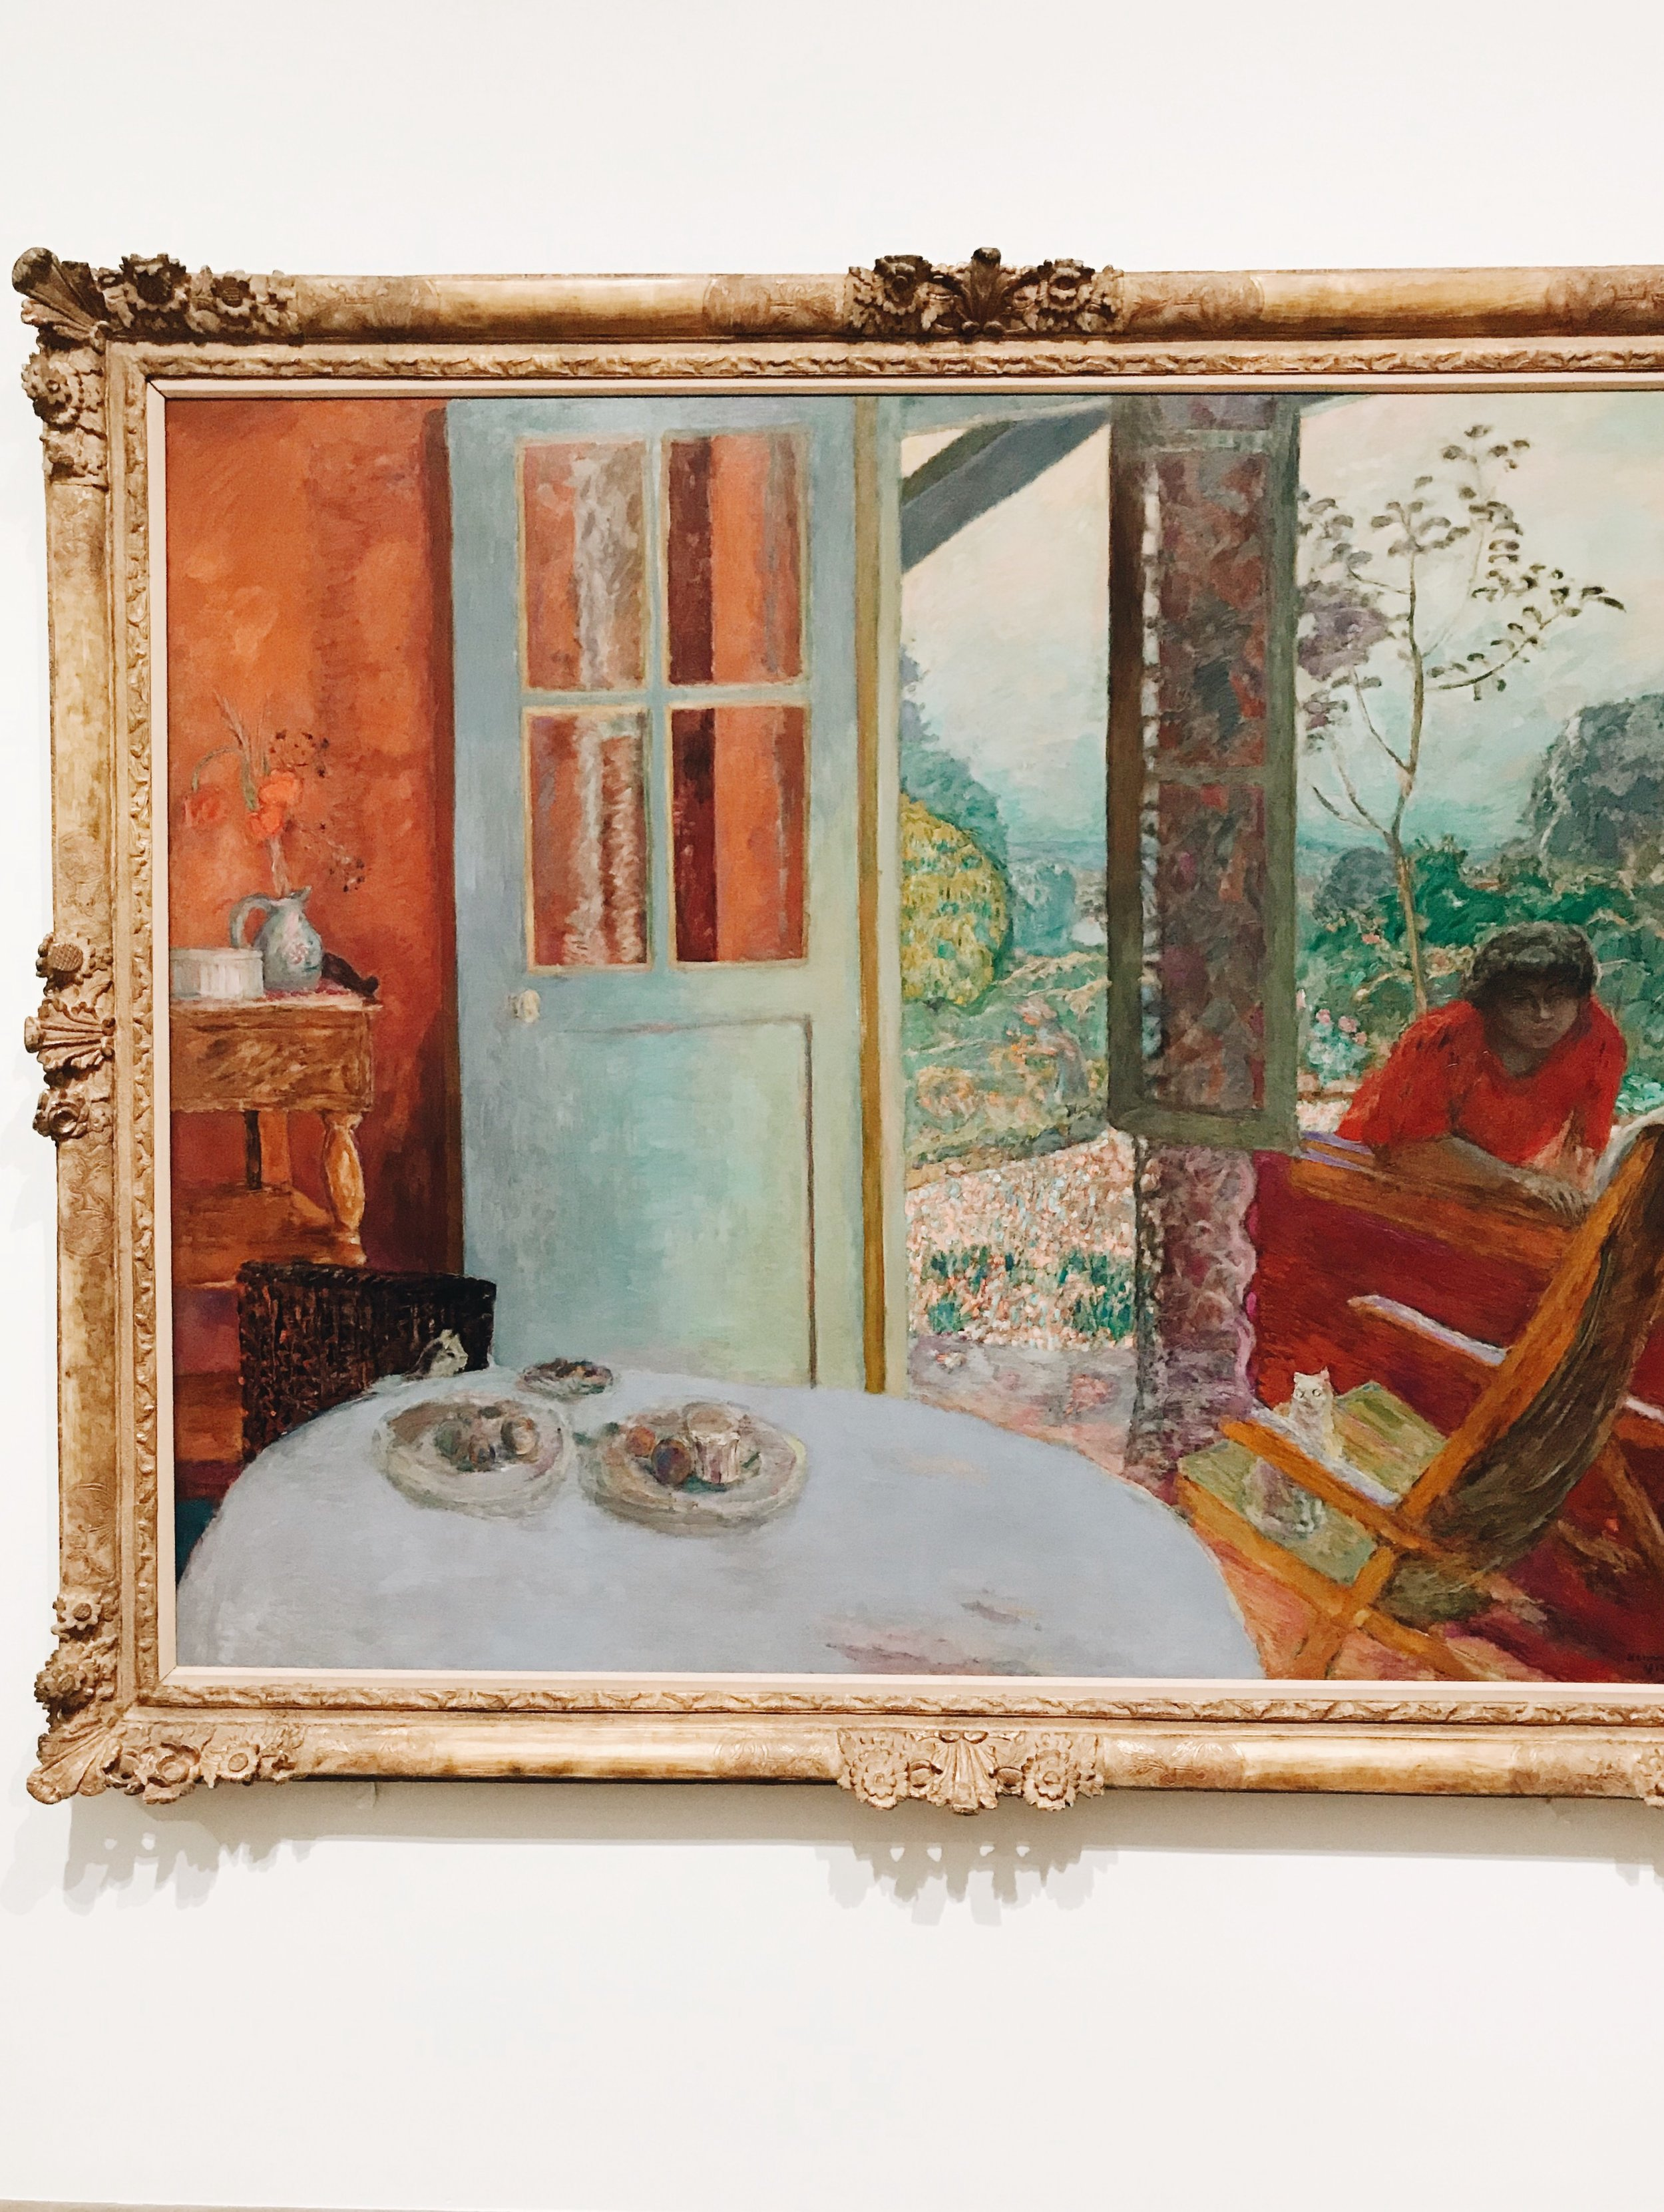 Dining Room in the Country, 1913 by Pierre Bonnard.